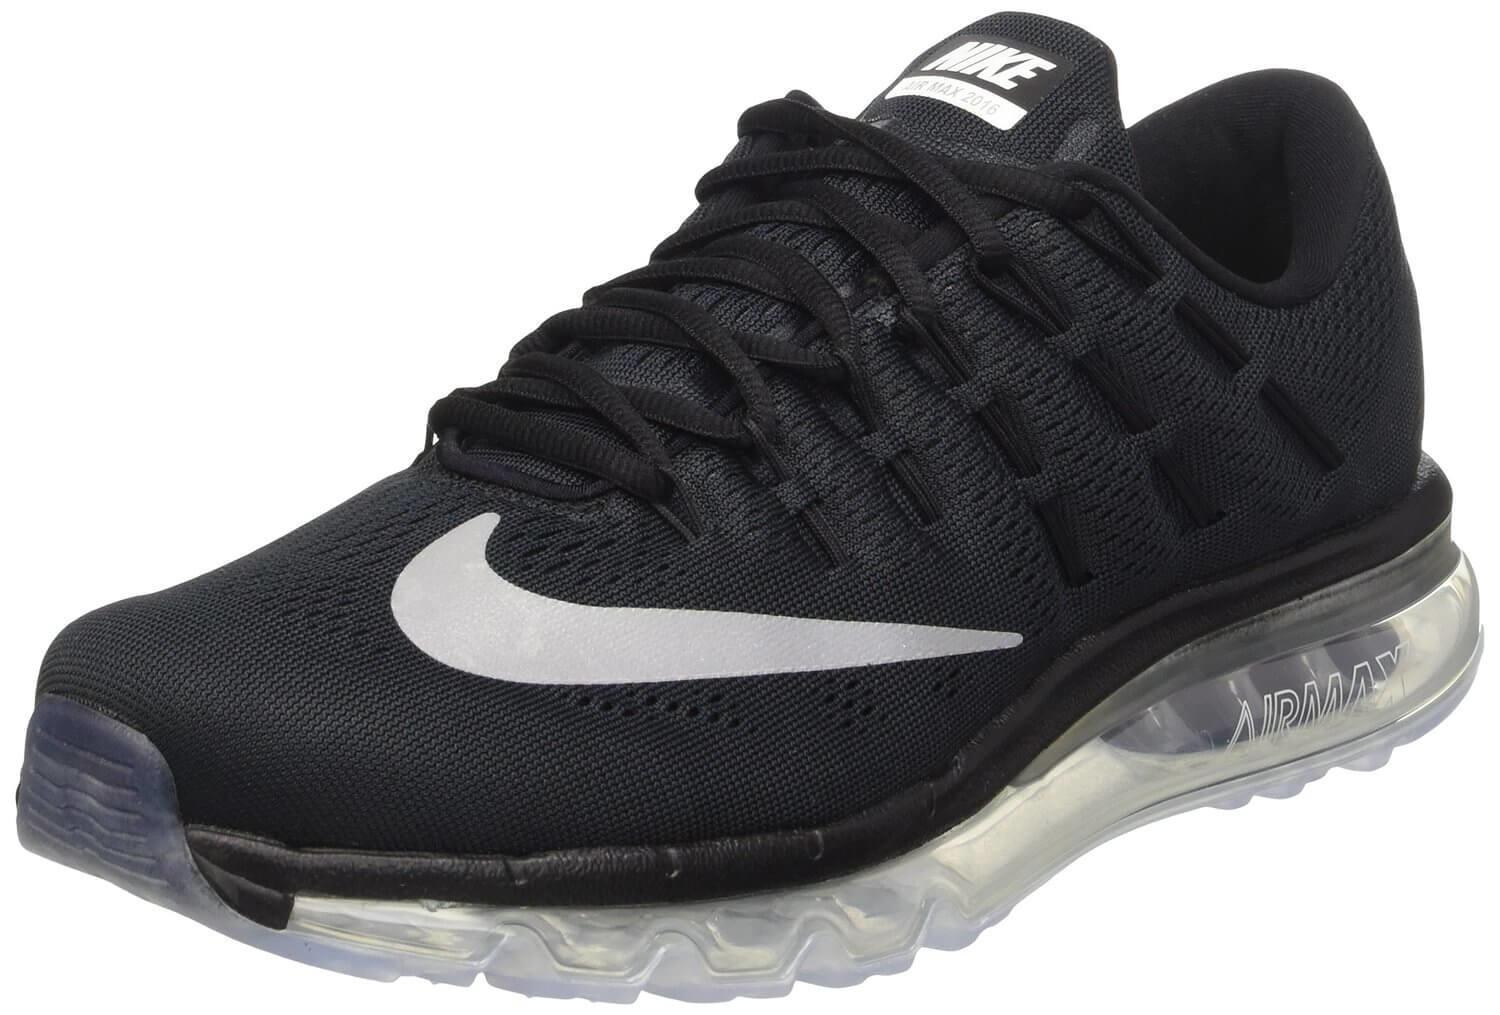 fb1f6839bd39d Nike Air Max 2016 Reviewed & Rated for Quality